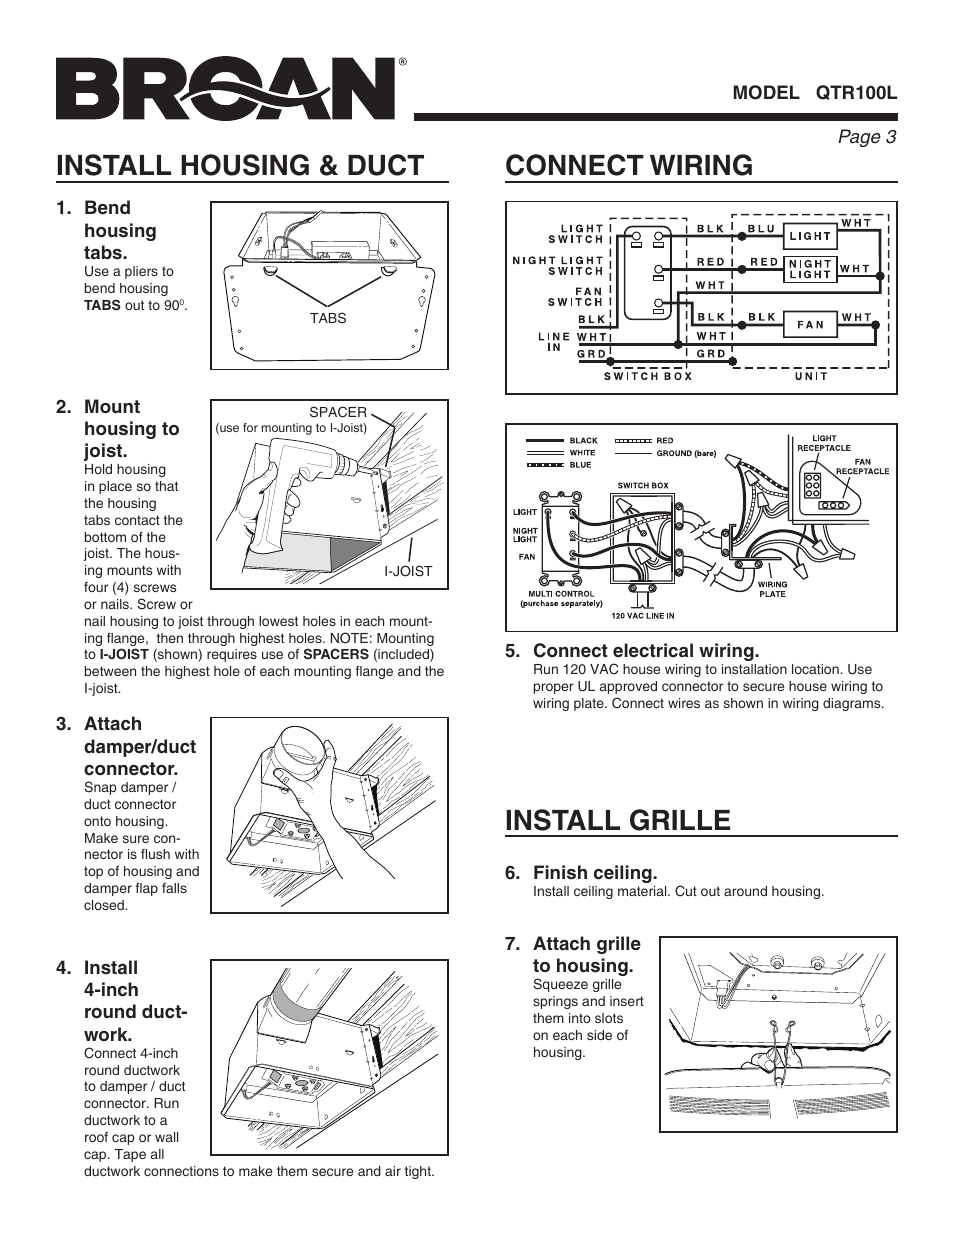 Connect wiring, Install housing & duct, Install grille